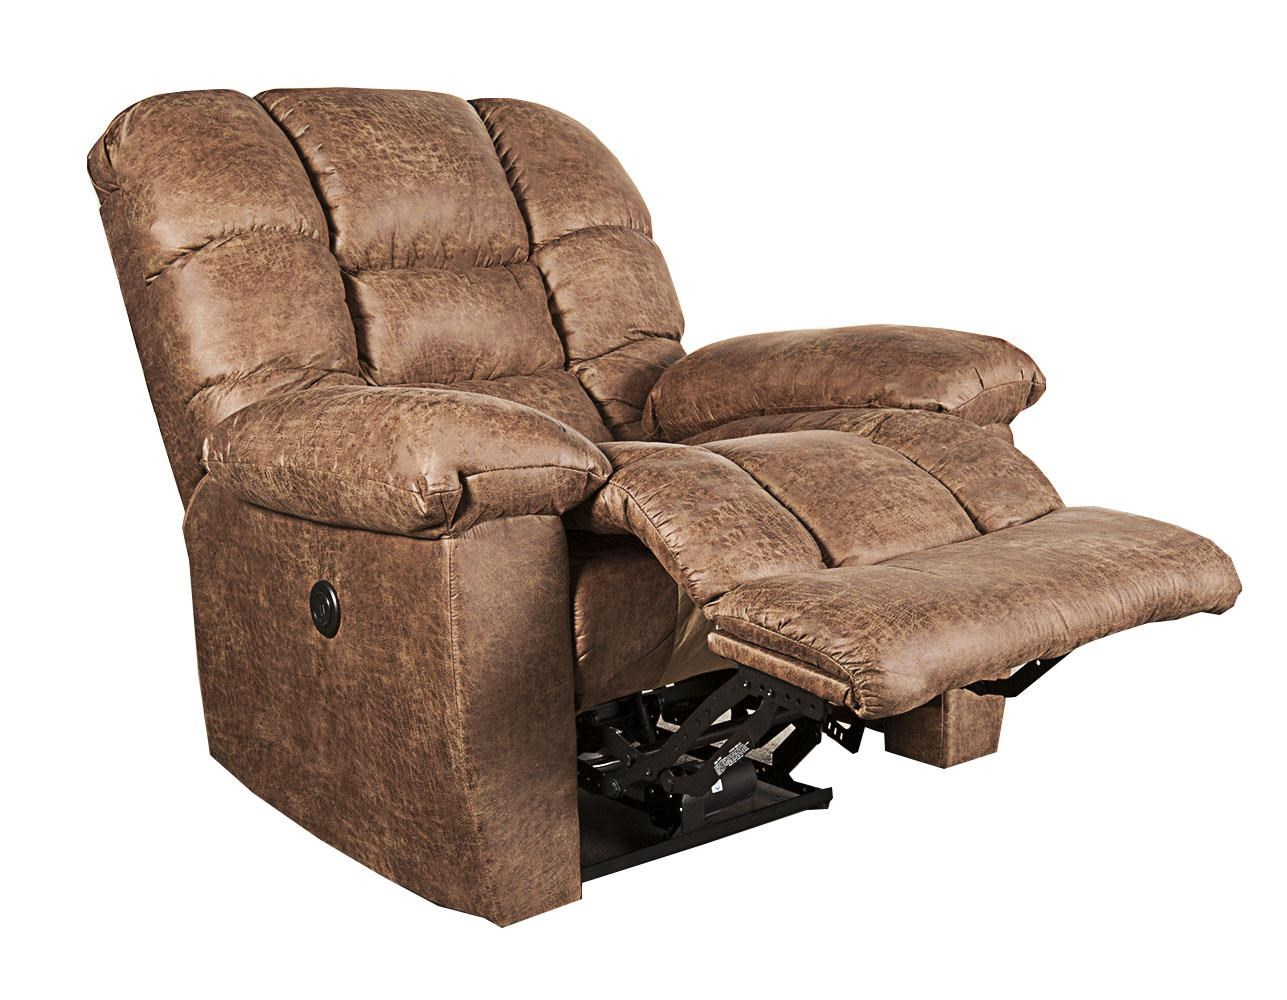 Hughes power recliner morris home three way recliners Morris home furniture outlet